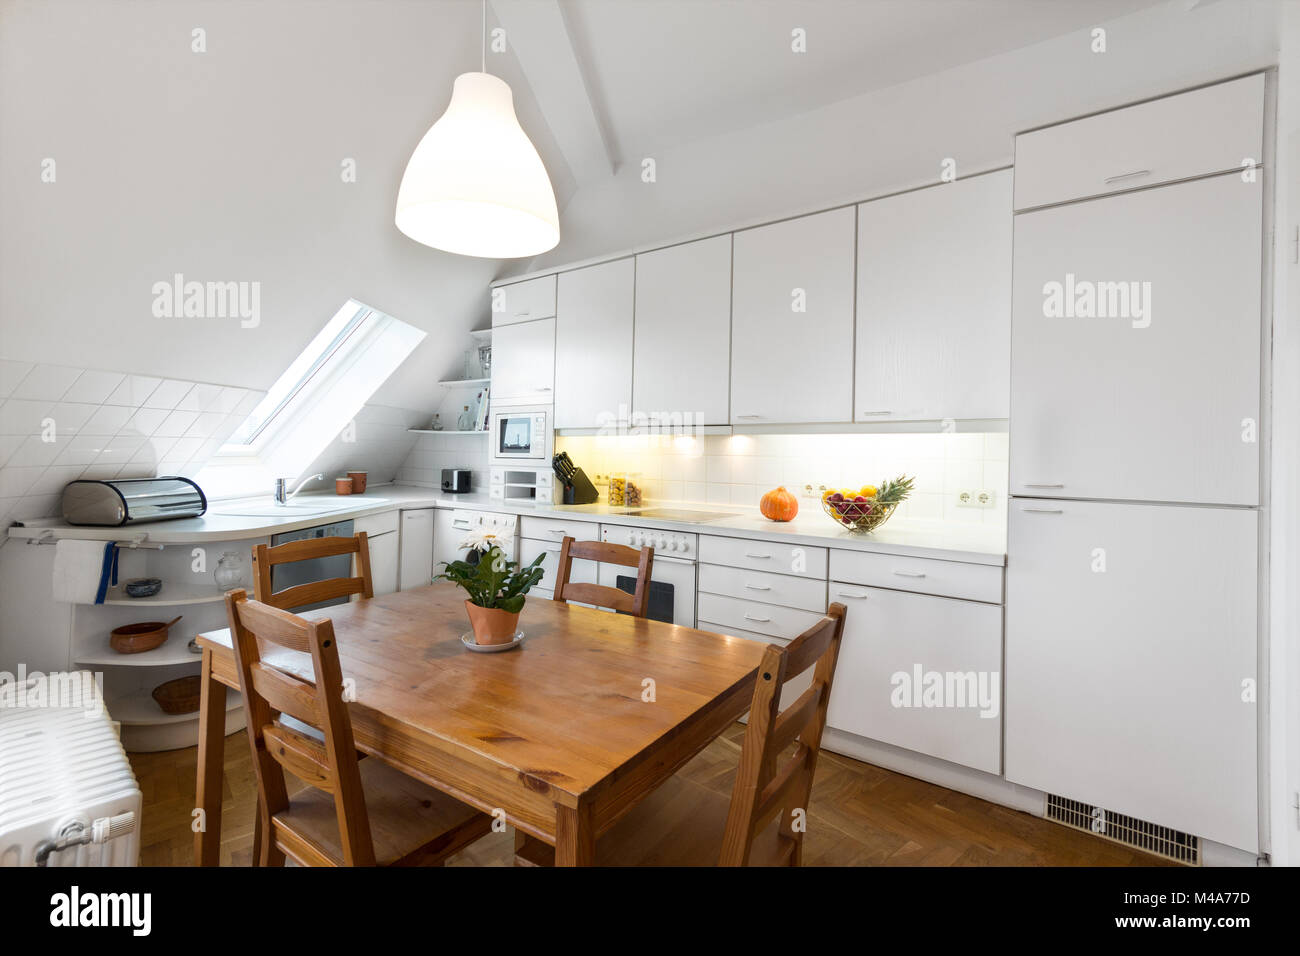 Kitchen In Attic Stockfotos & Kitchen In Attic Bilder - Alamy